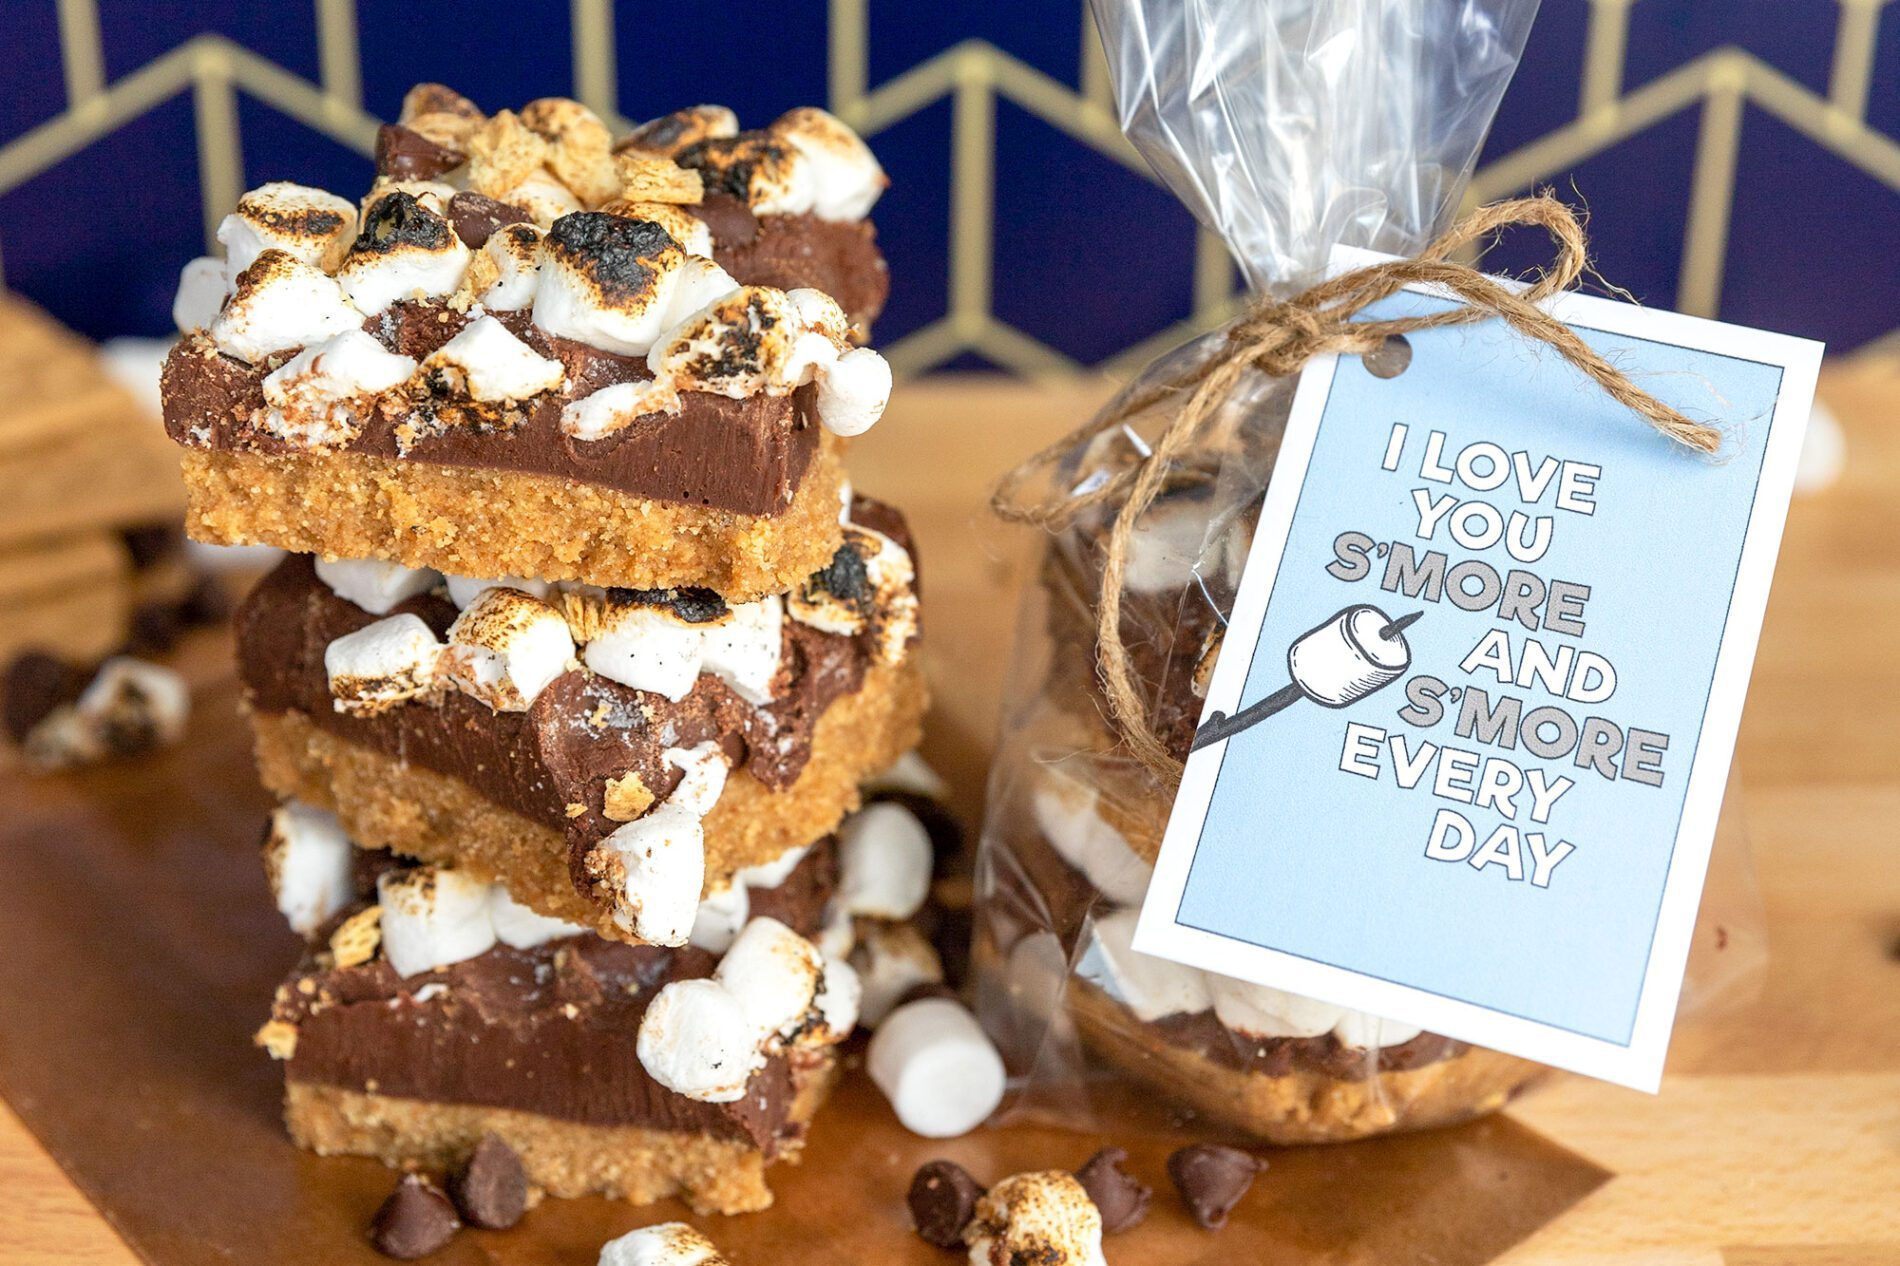 I love you s'more and s'more every day printable next to s'mores fudge bars